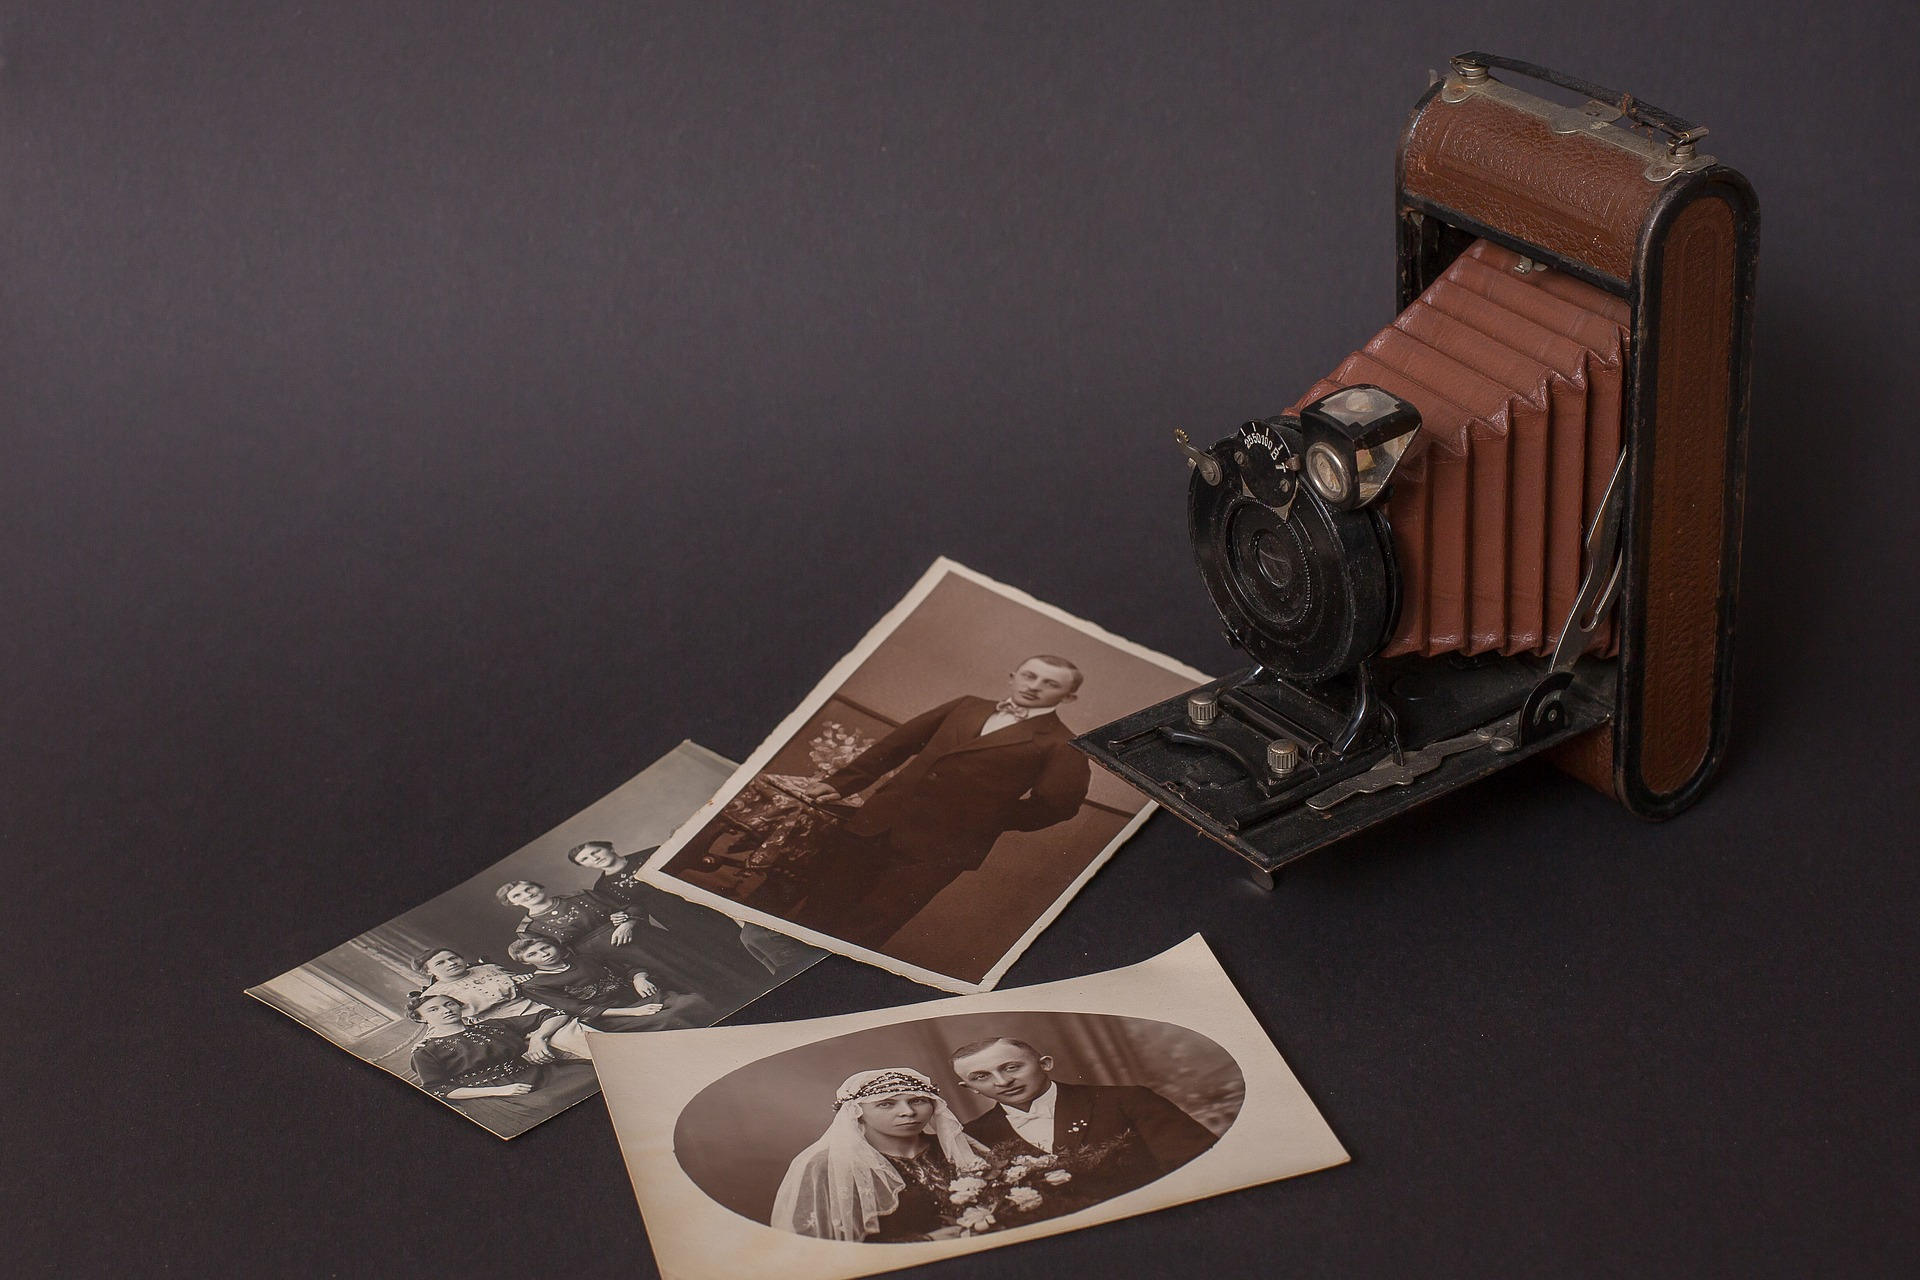 Preserving and Storing Photographs is Important for Historical Research